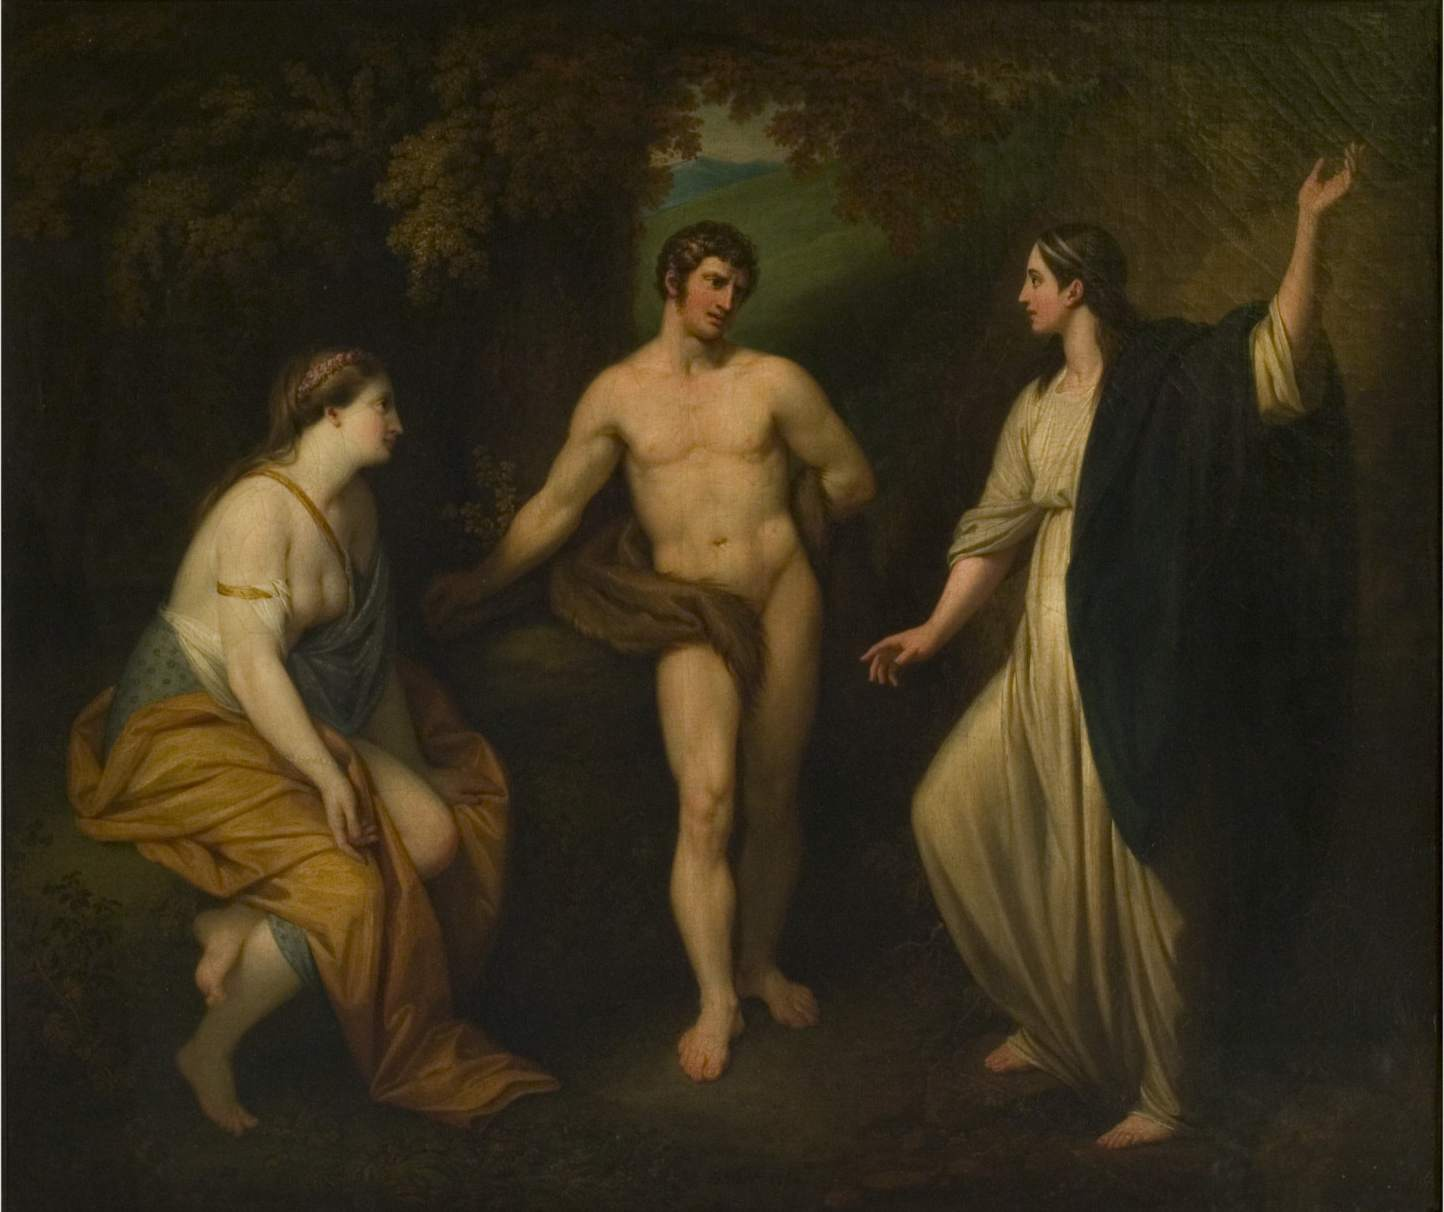 File:Benjamin West - Choice of Hercules between Virtue and Pleasure.jpg